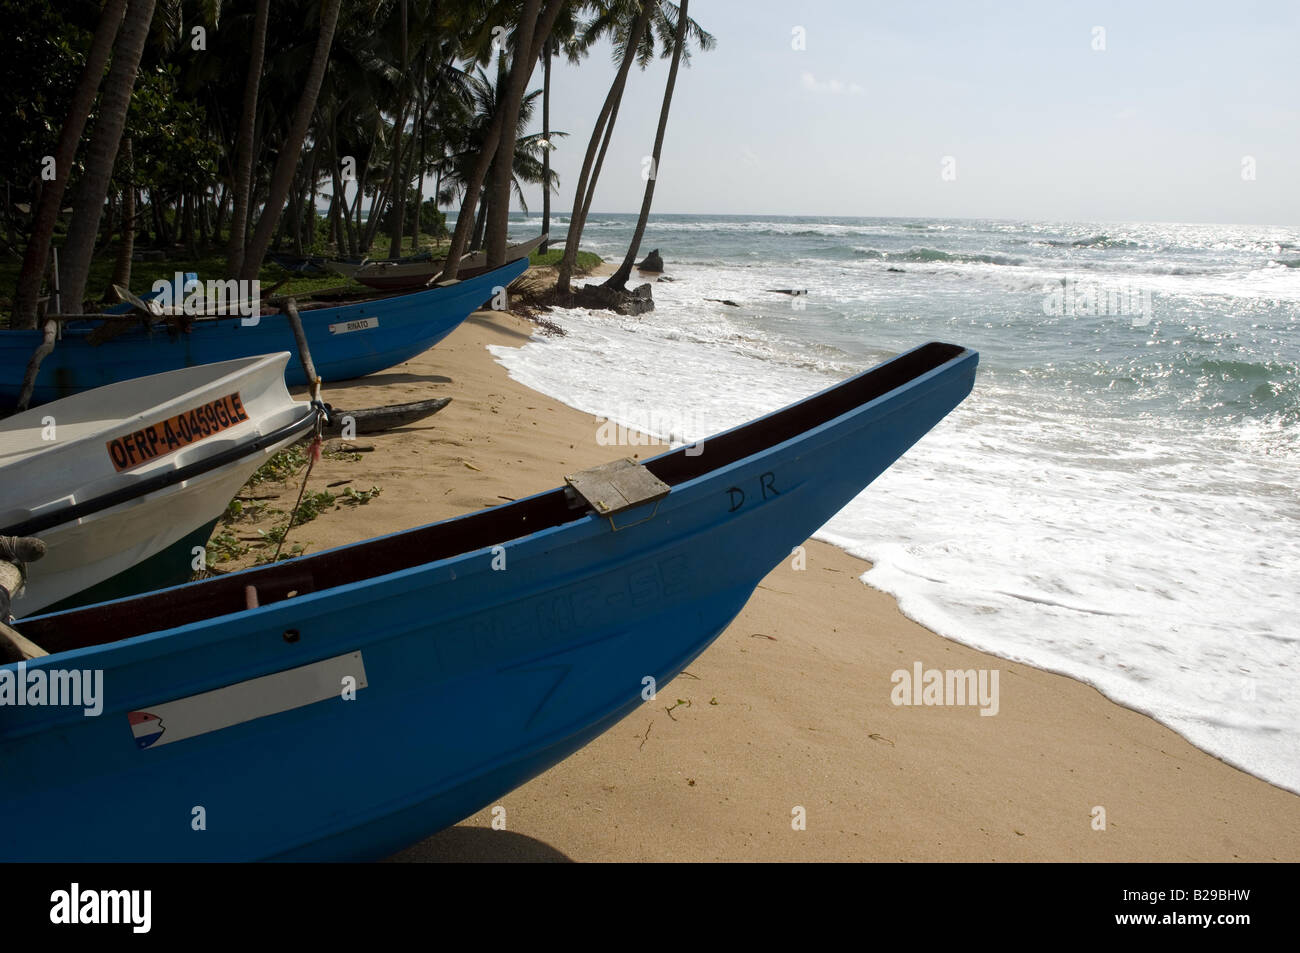 Fishing boats near galle Sri Lanka Date 20 04 2008 Ref ZB648 115261 0045 COMPULSORY CREDIT World Pictures Photoshot - Stock Image